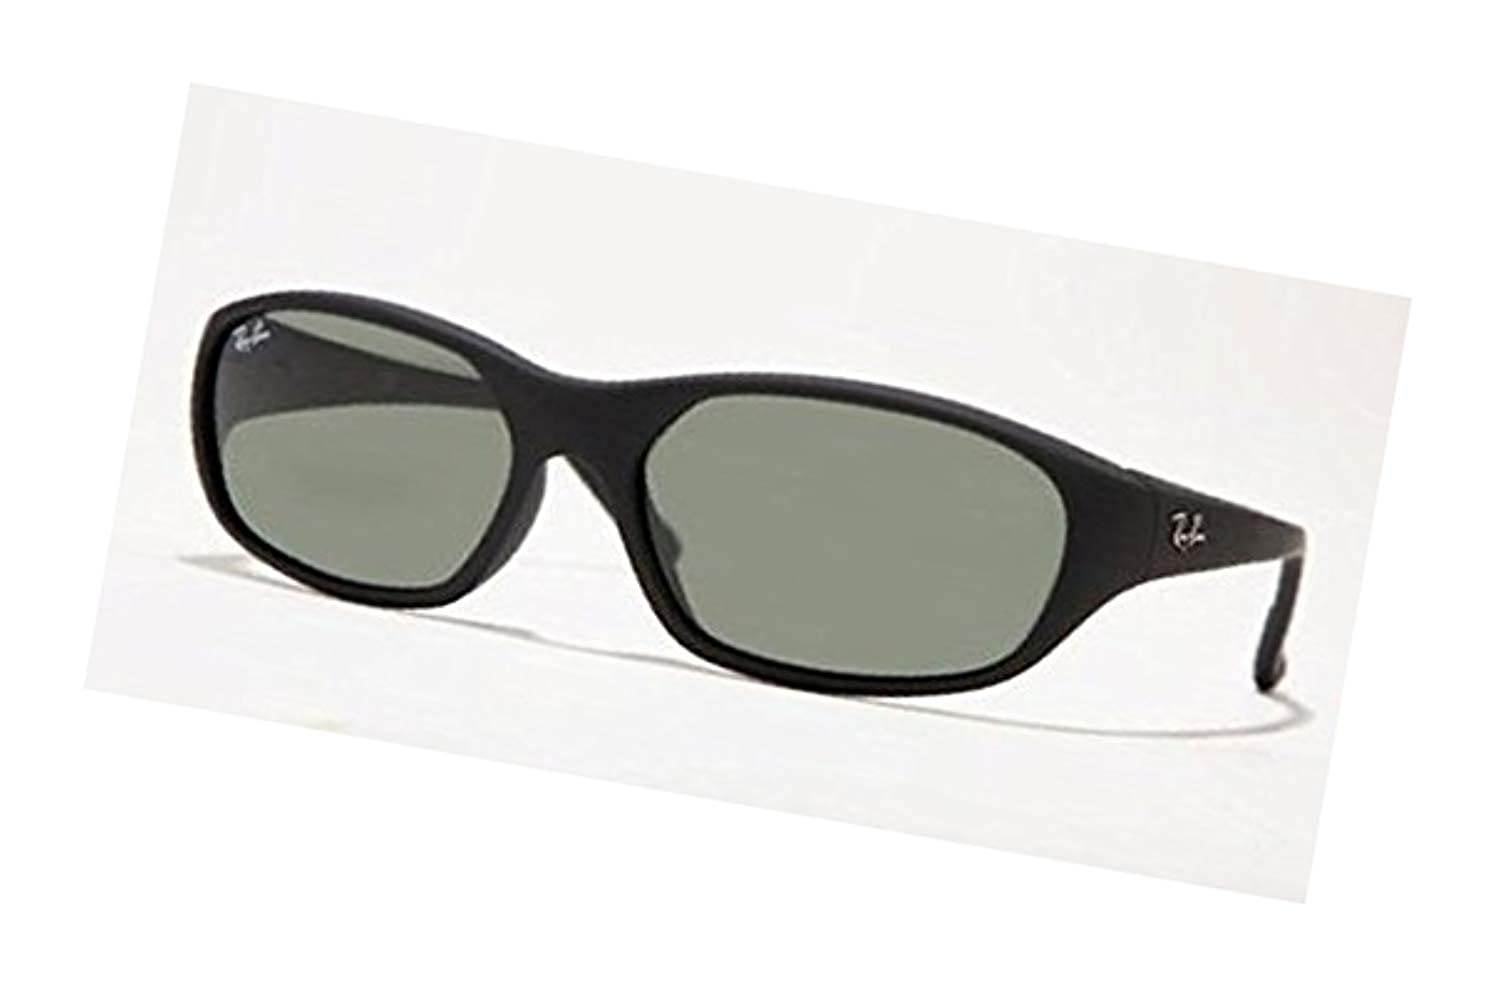 5ee4147087 Amazon.com  Ray-Ban Daddy-O RB 2016 Sunglasses Matte Black Crystal Green  59mm   HDO Cleaning Carekit Bundle  Clothing